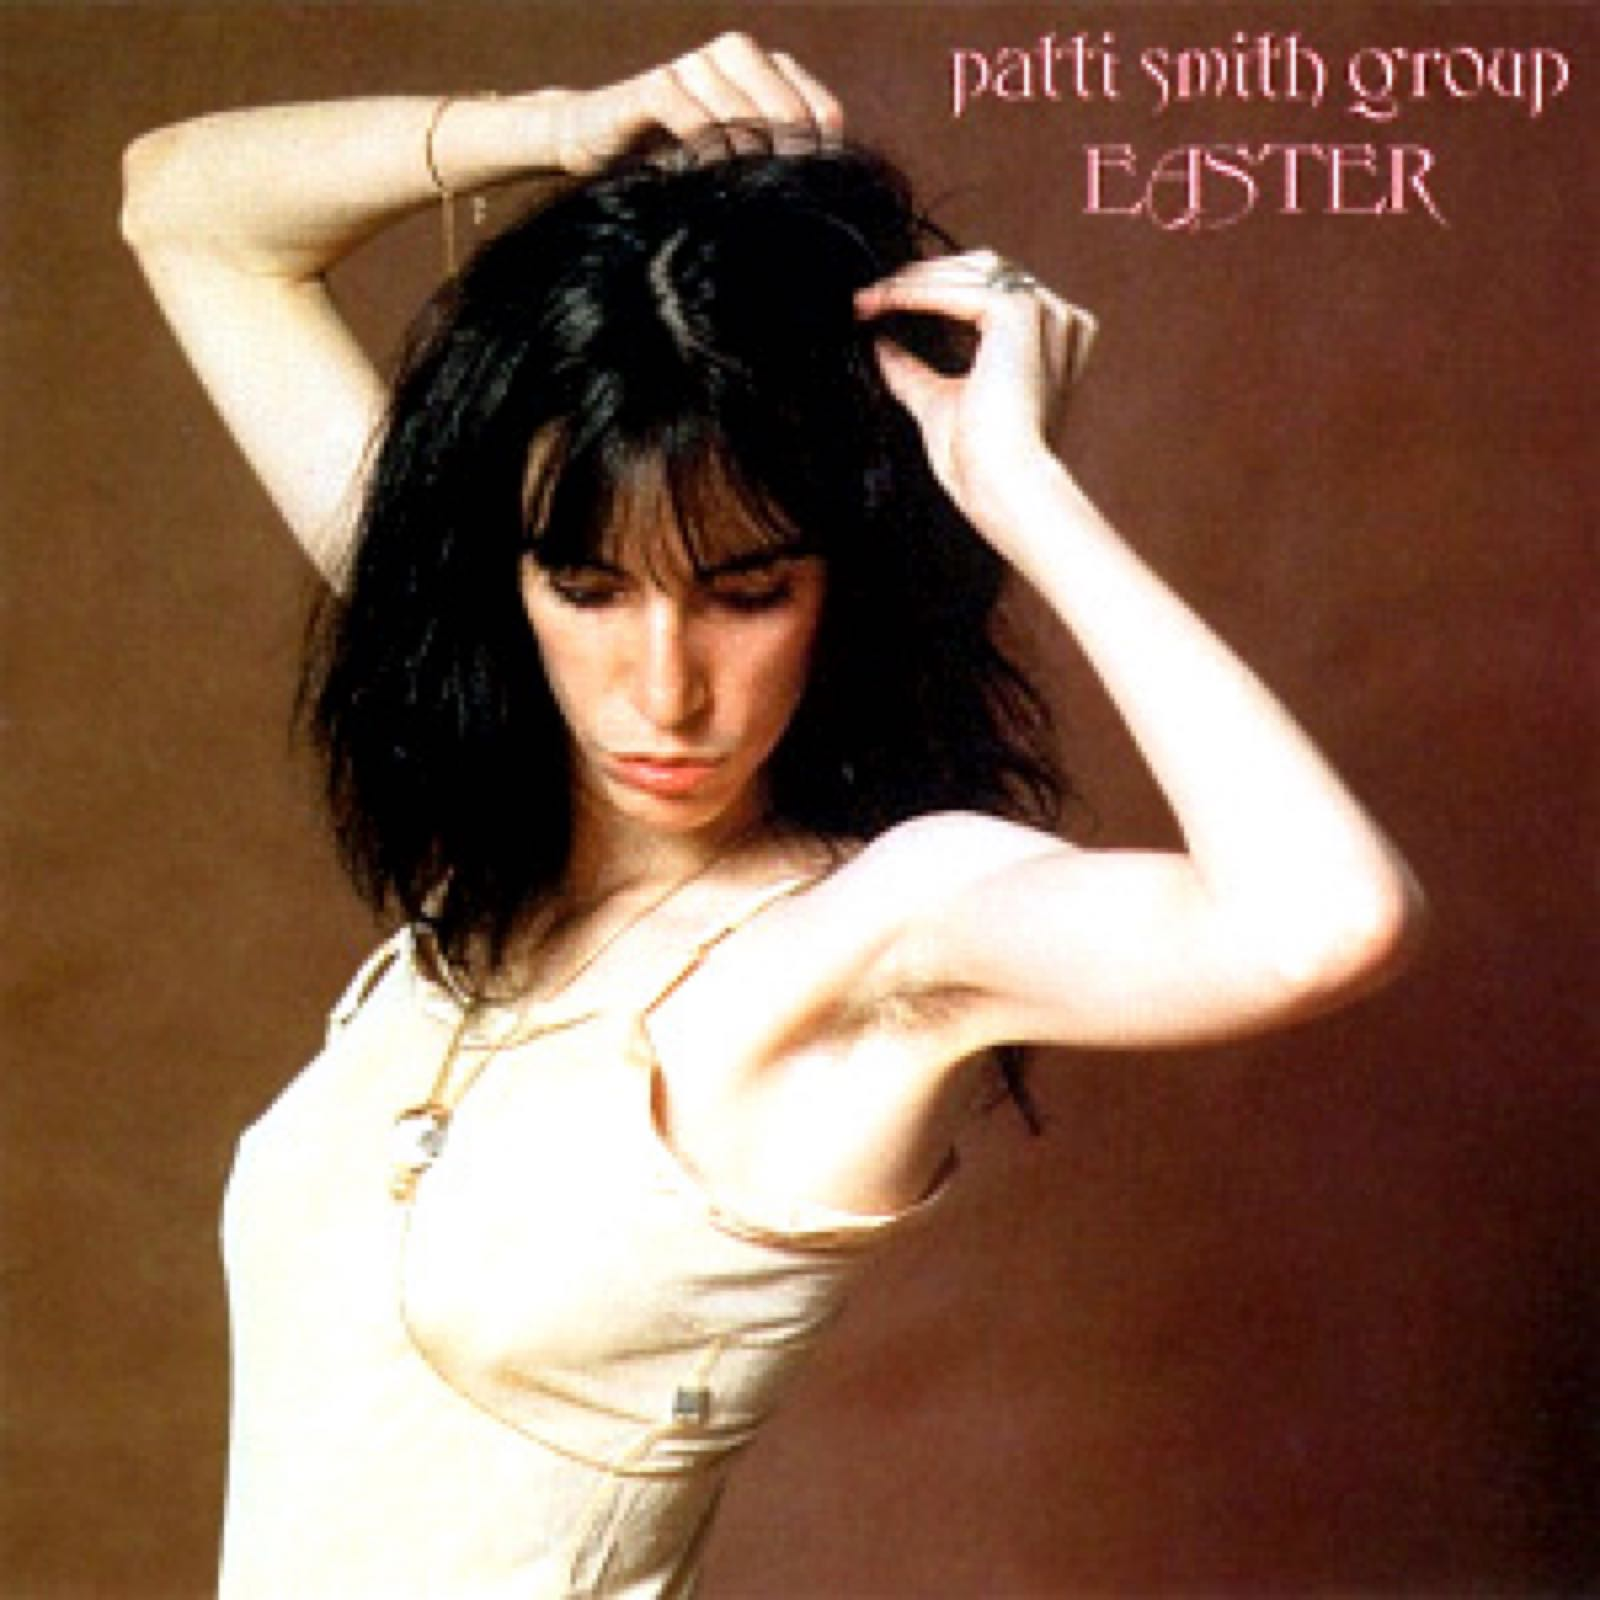 Patti Smith Group - Easter [LP]